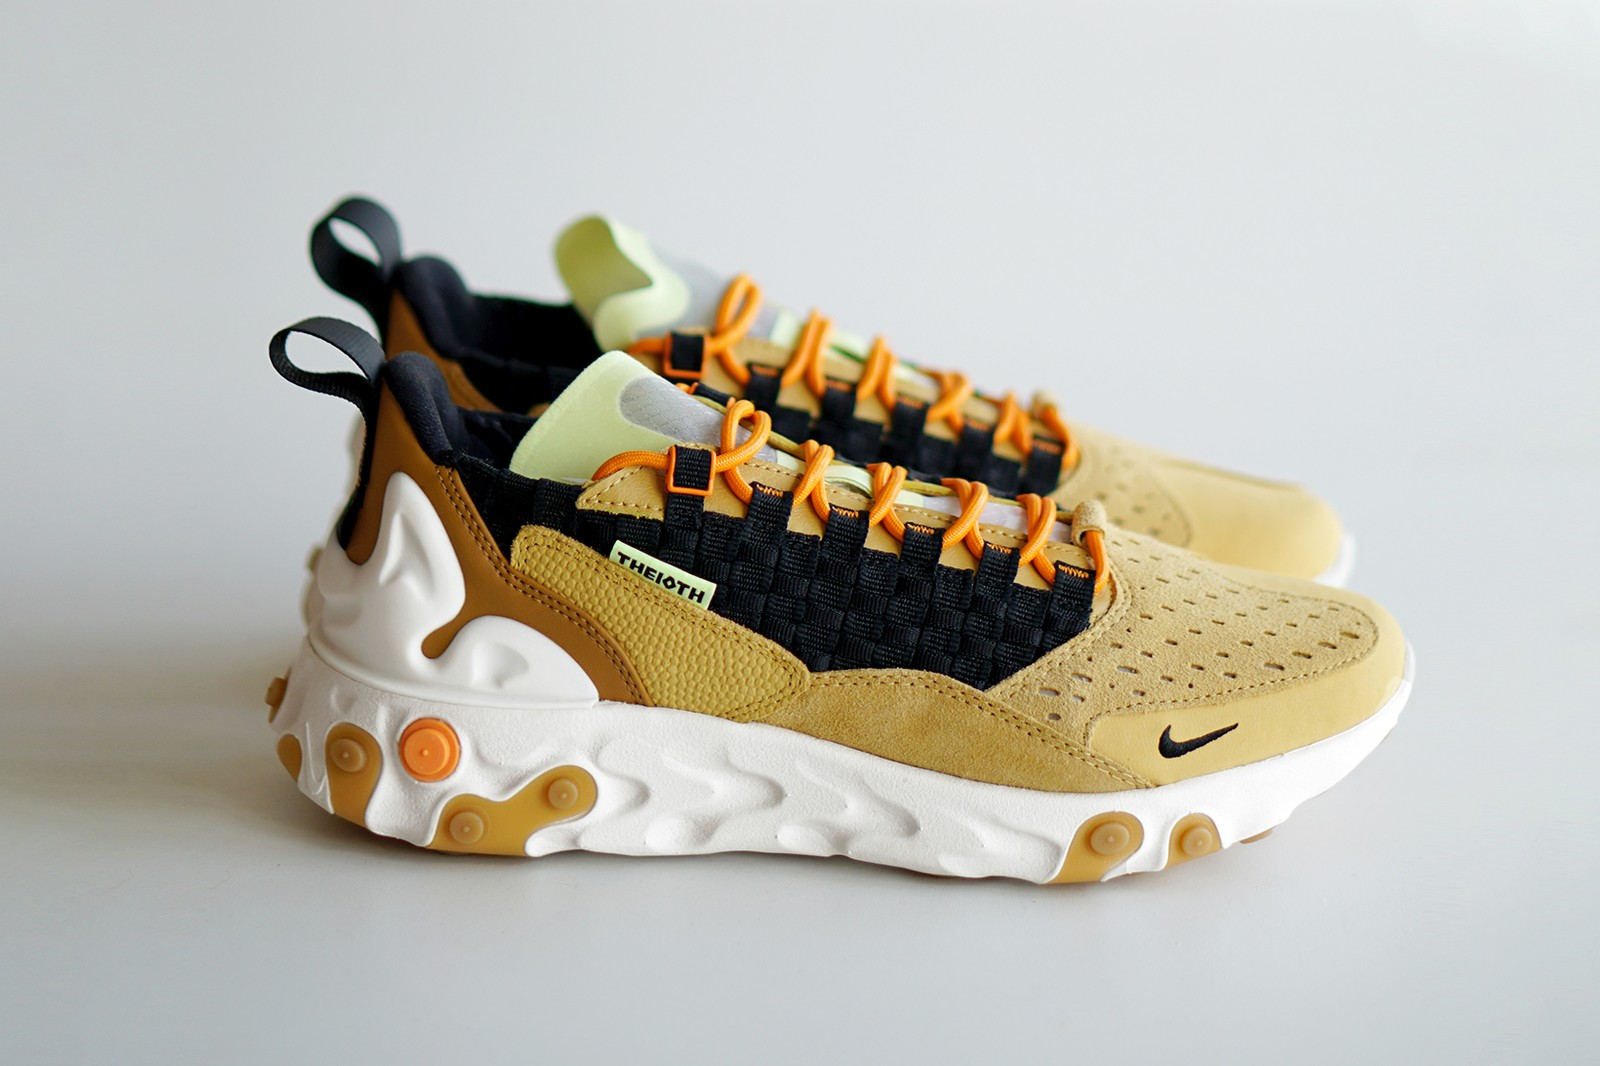 best fall womens sneakers trainers nike adidas converse vans kith onitsuka tiger falcon air max 270 react 95 chuck 70 retrosuperfuture gsm